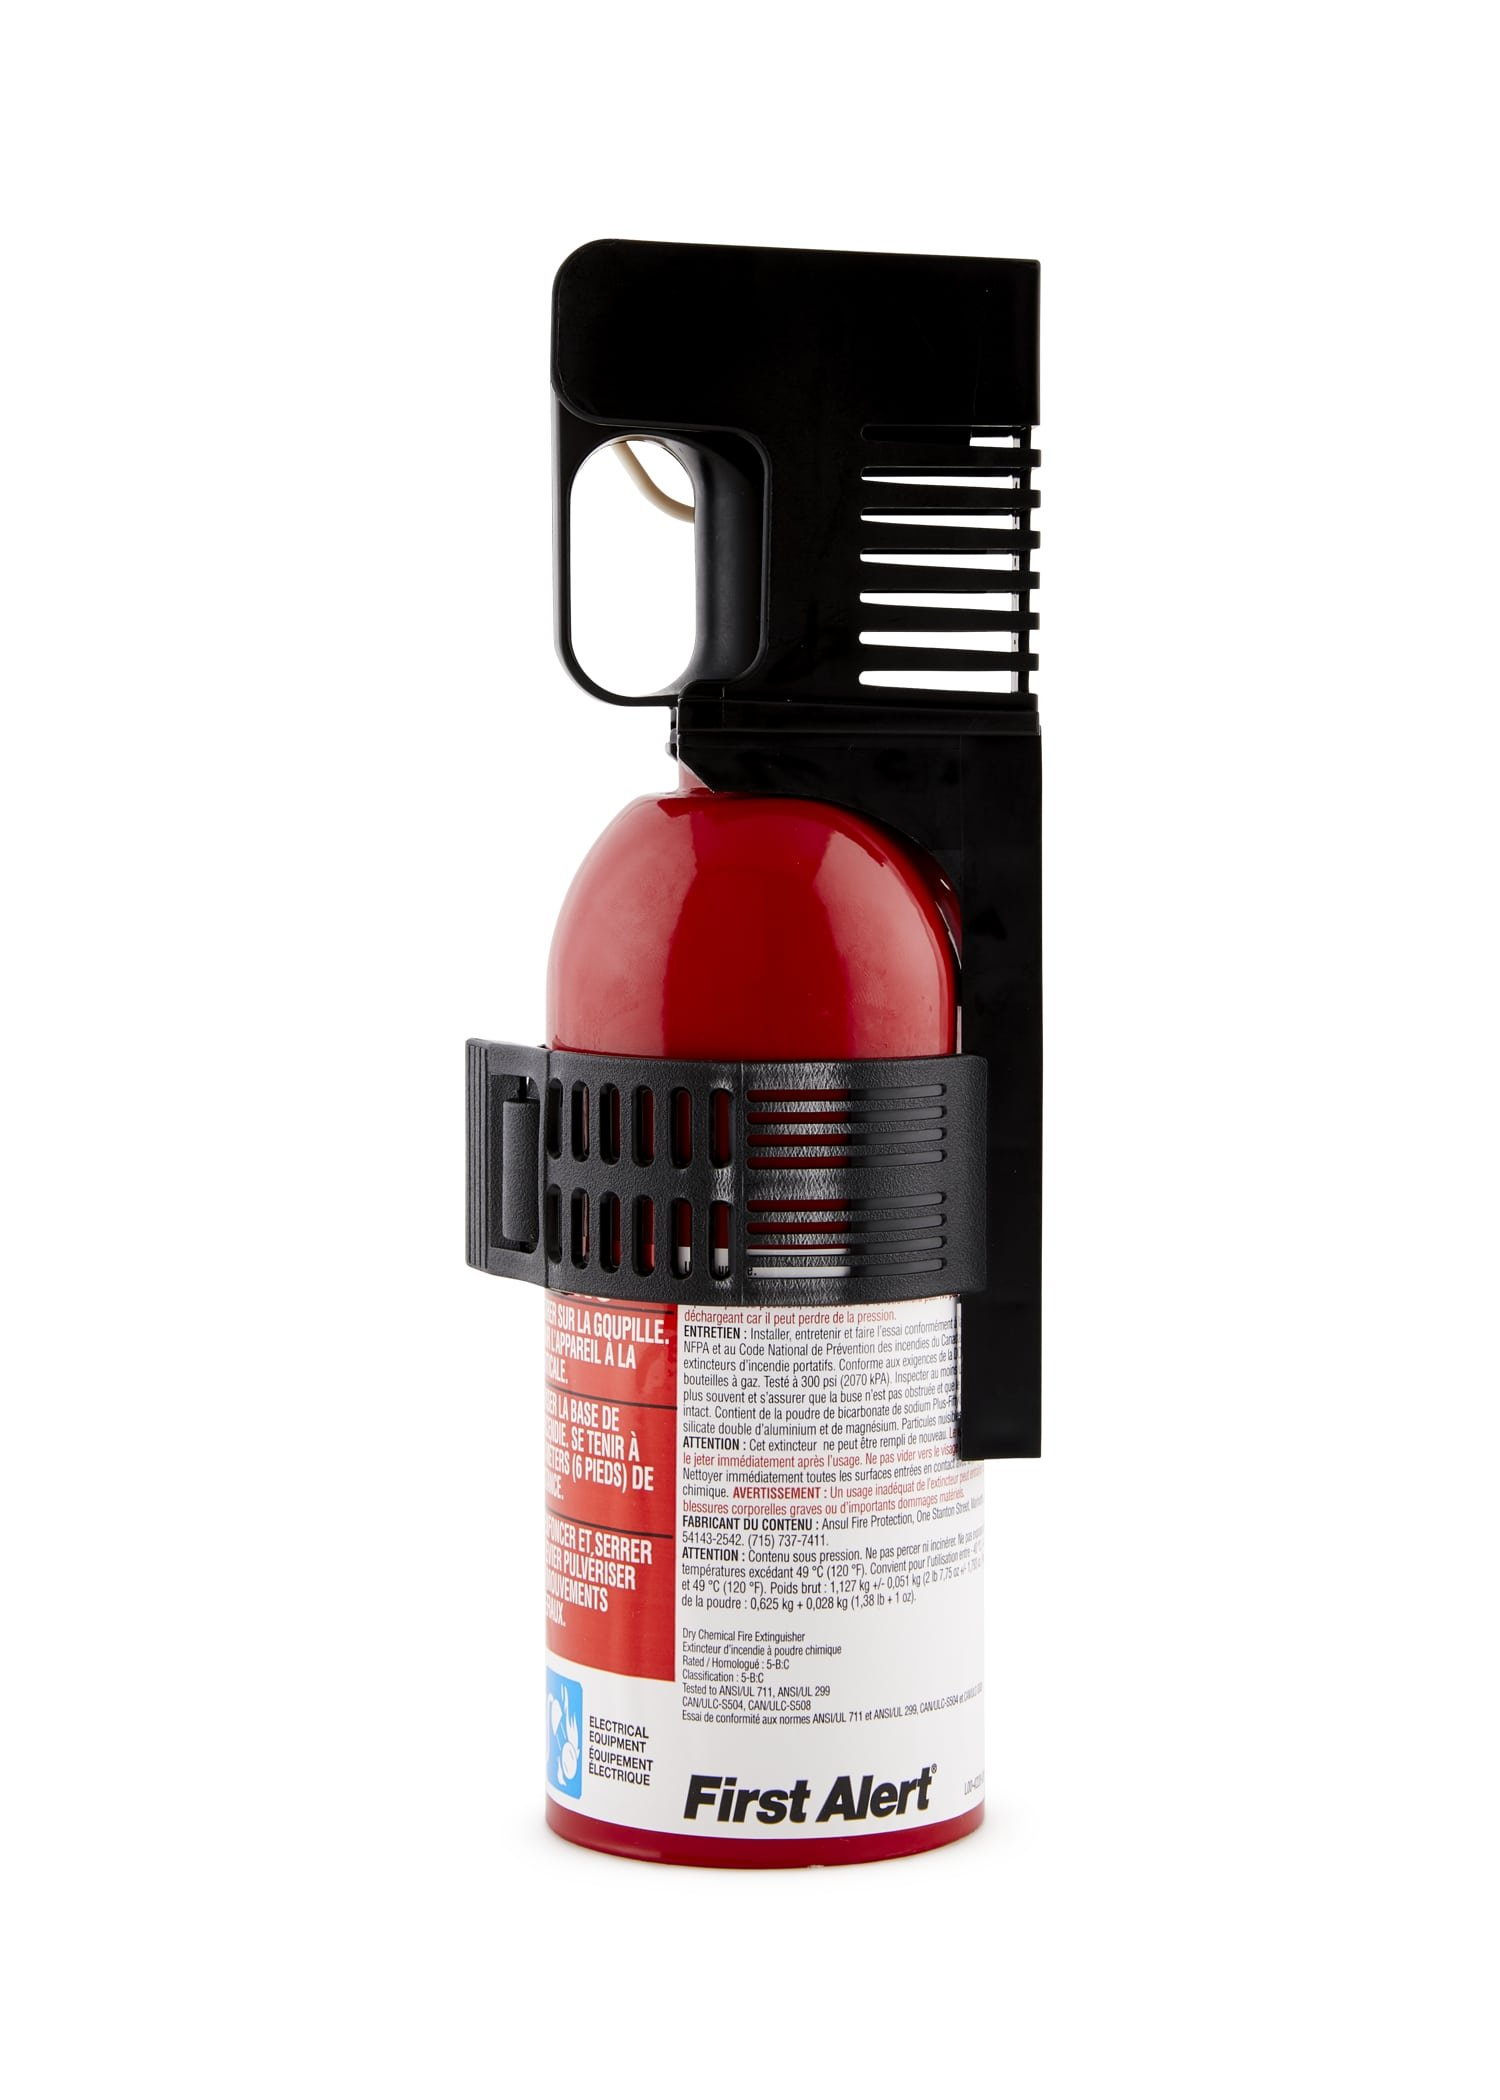 First Alert AUTO5 Auto Fire Extinguisher, Red by First Alert (Image #1)